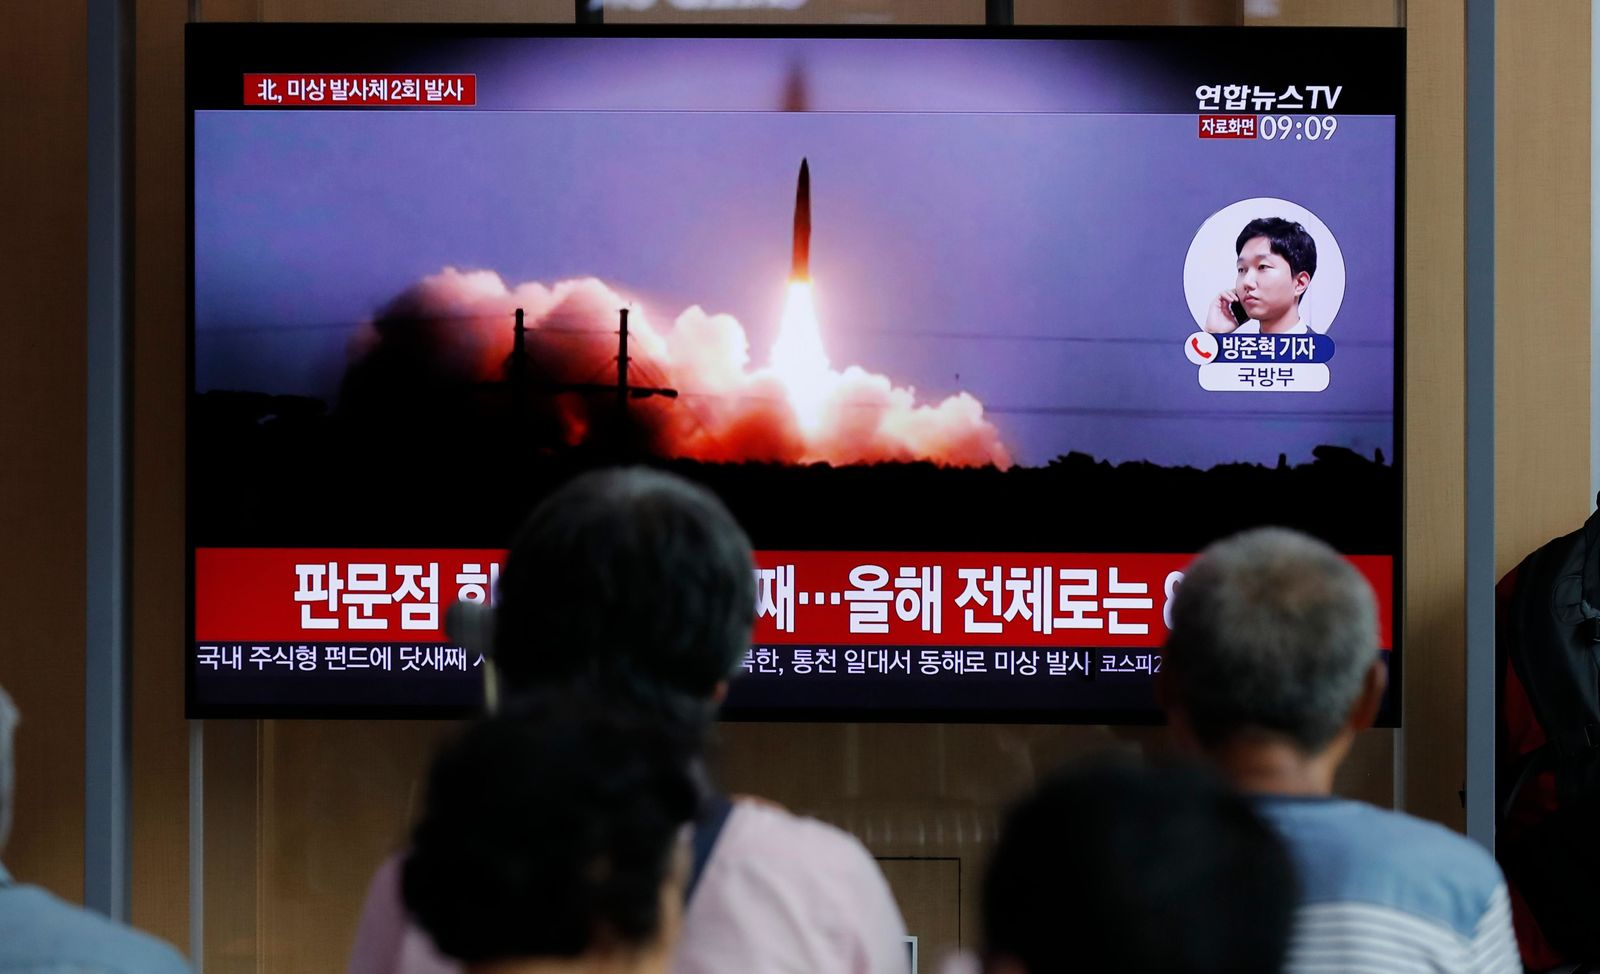 People watch a TV news program reporting about North Korea's firing projectiles with a file image at the Seoul Railway Station in Seoul, South Korea, Friday, Aug. 16, 2019.{ } (AP Photo/Lee Jin-man)